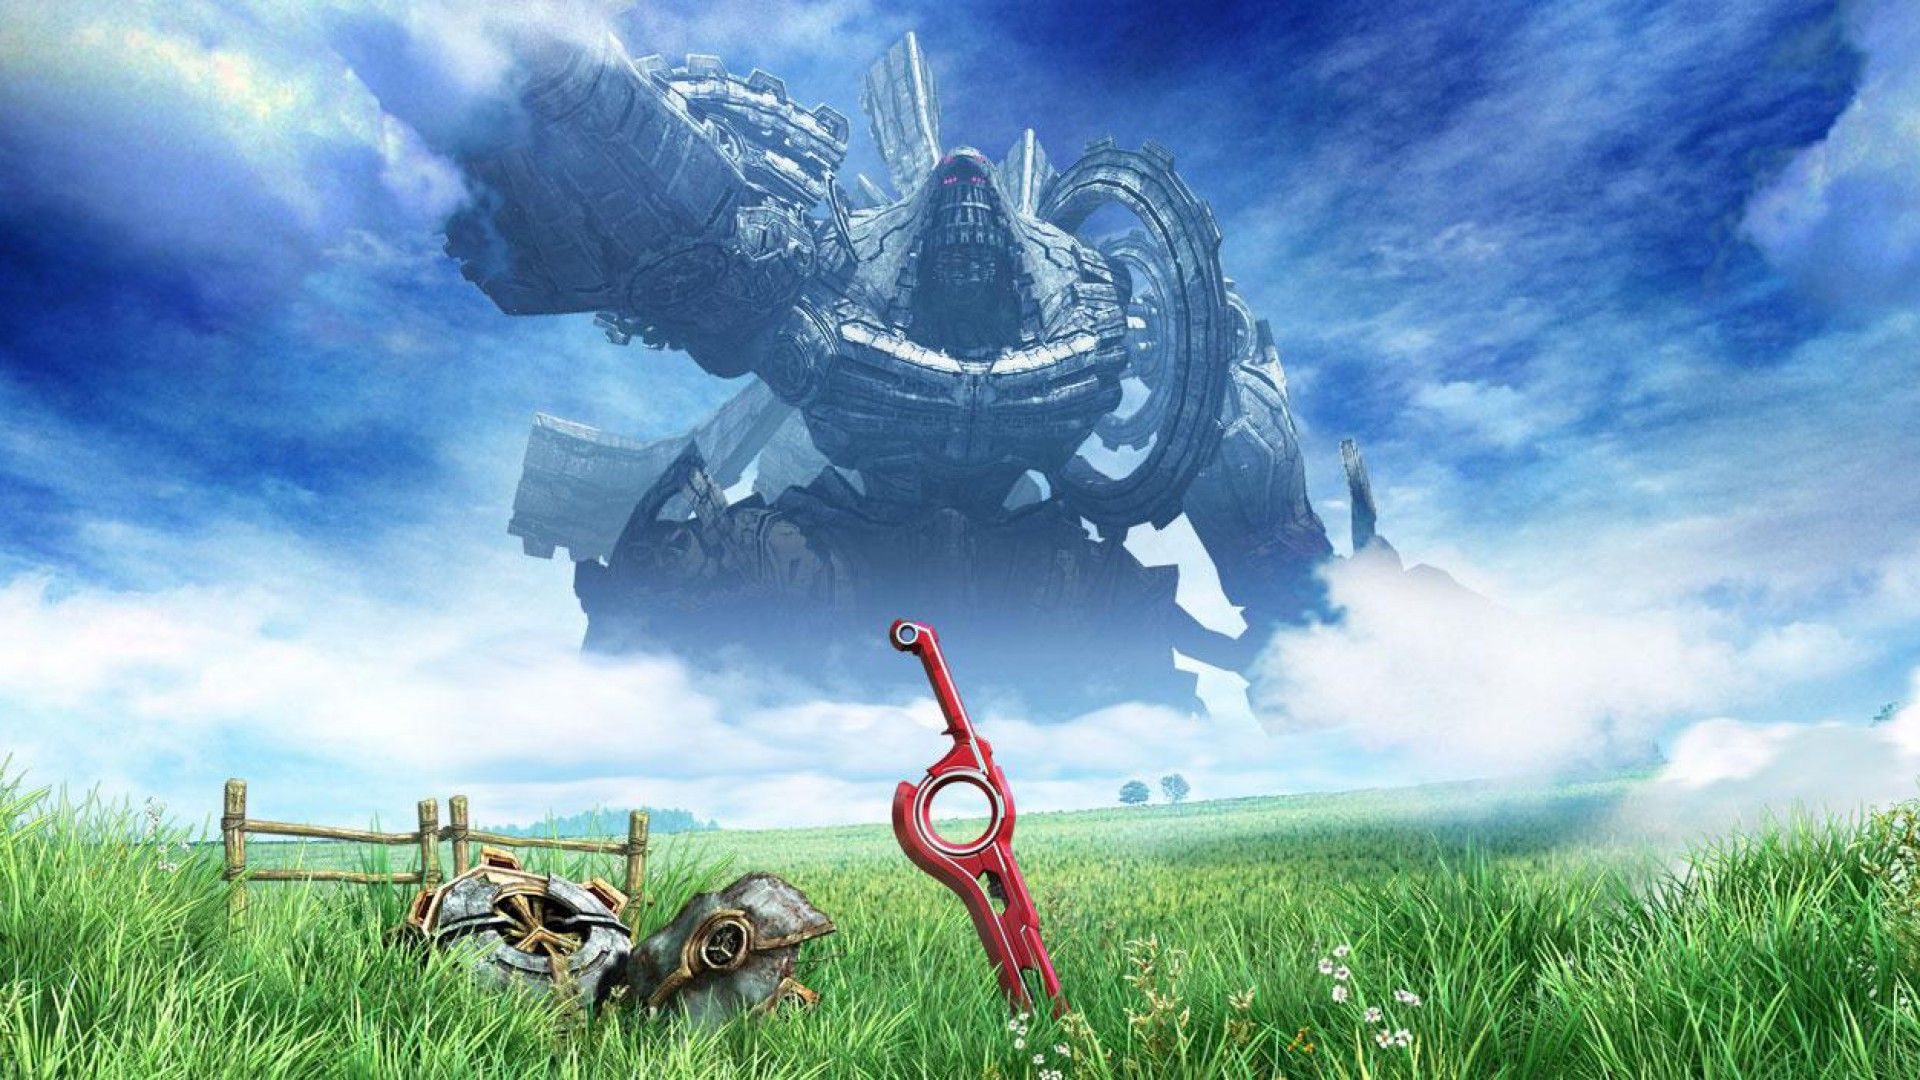 Xenoblade Chronicles Wallpaper 1920x1080 For 1080p Juegos